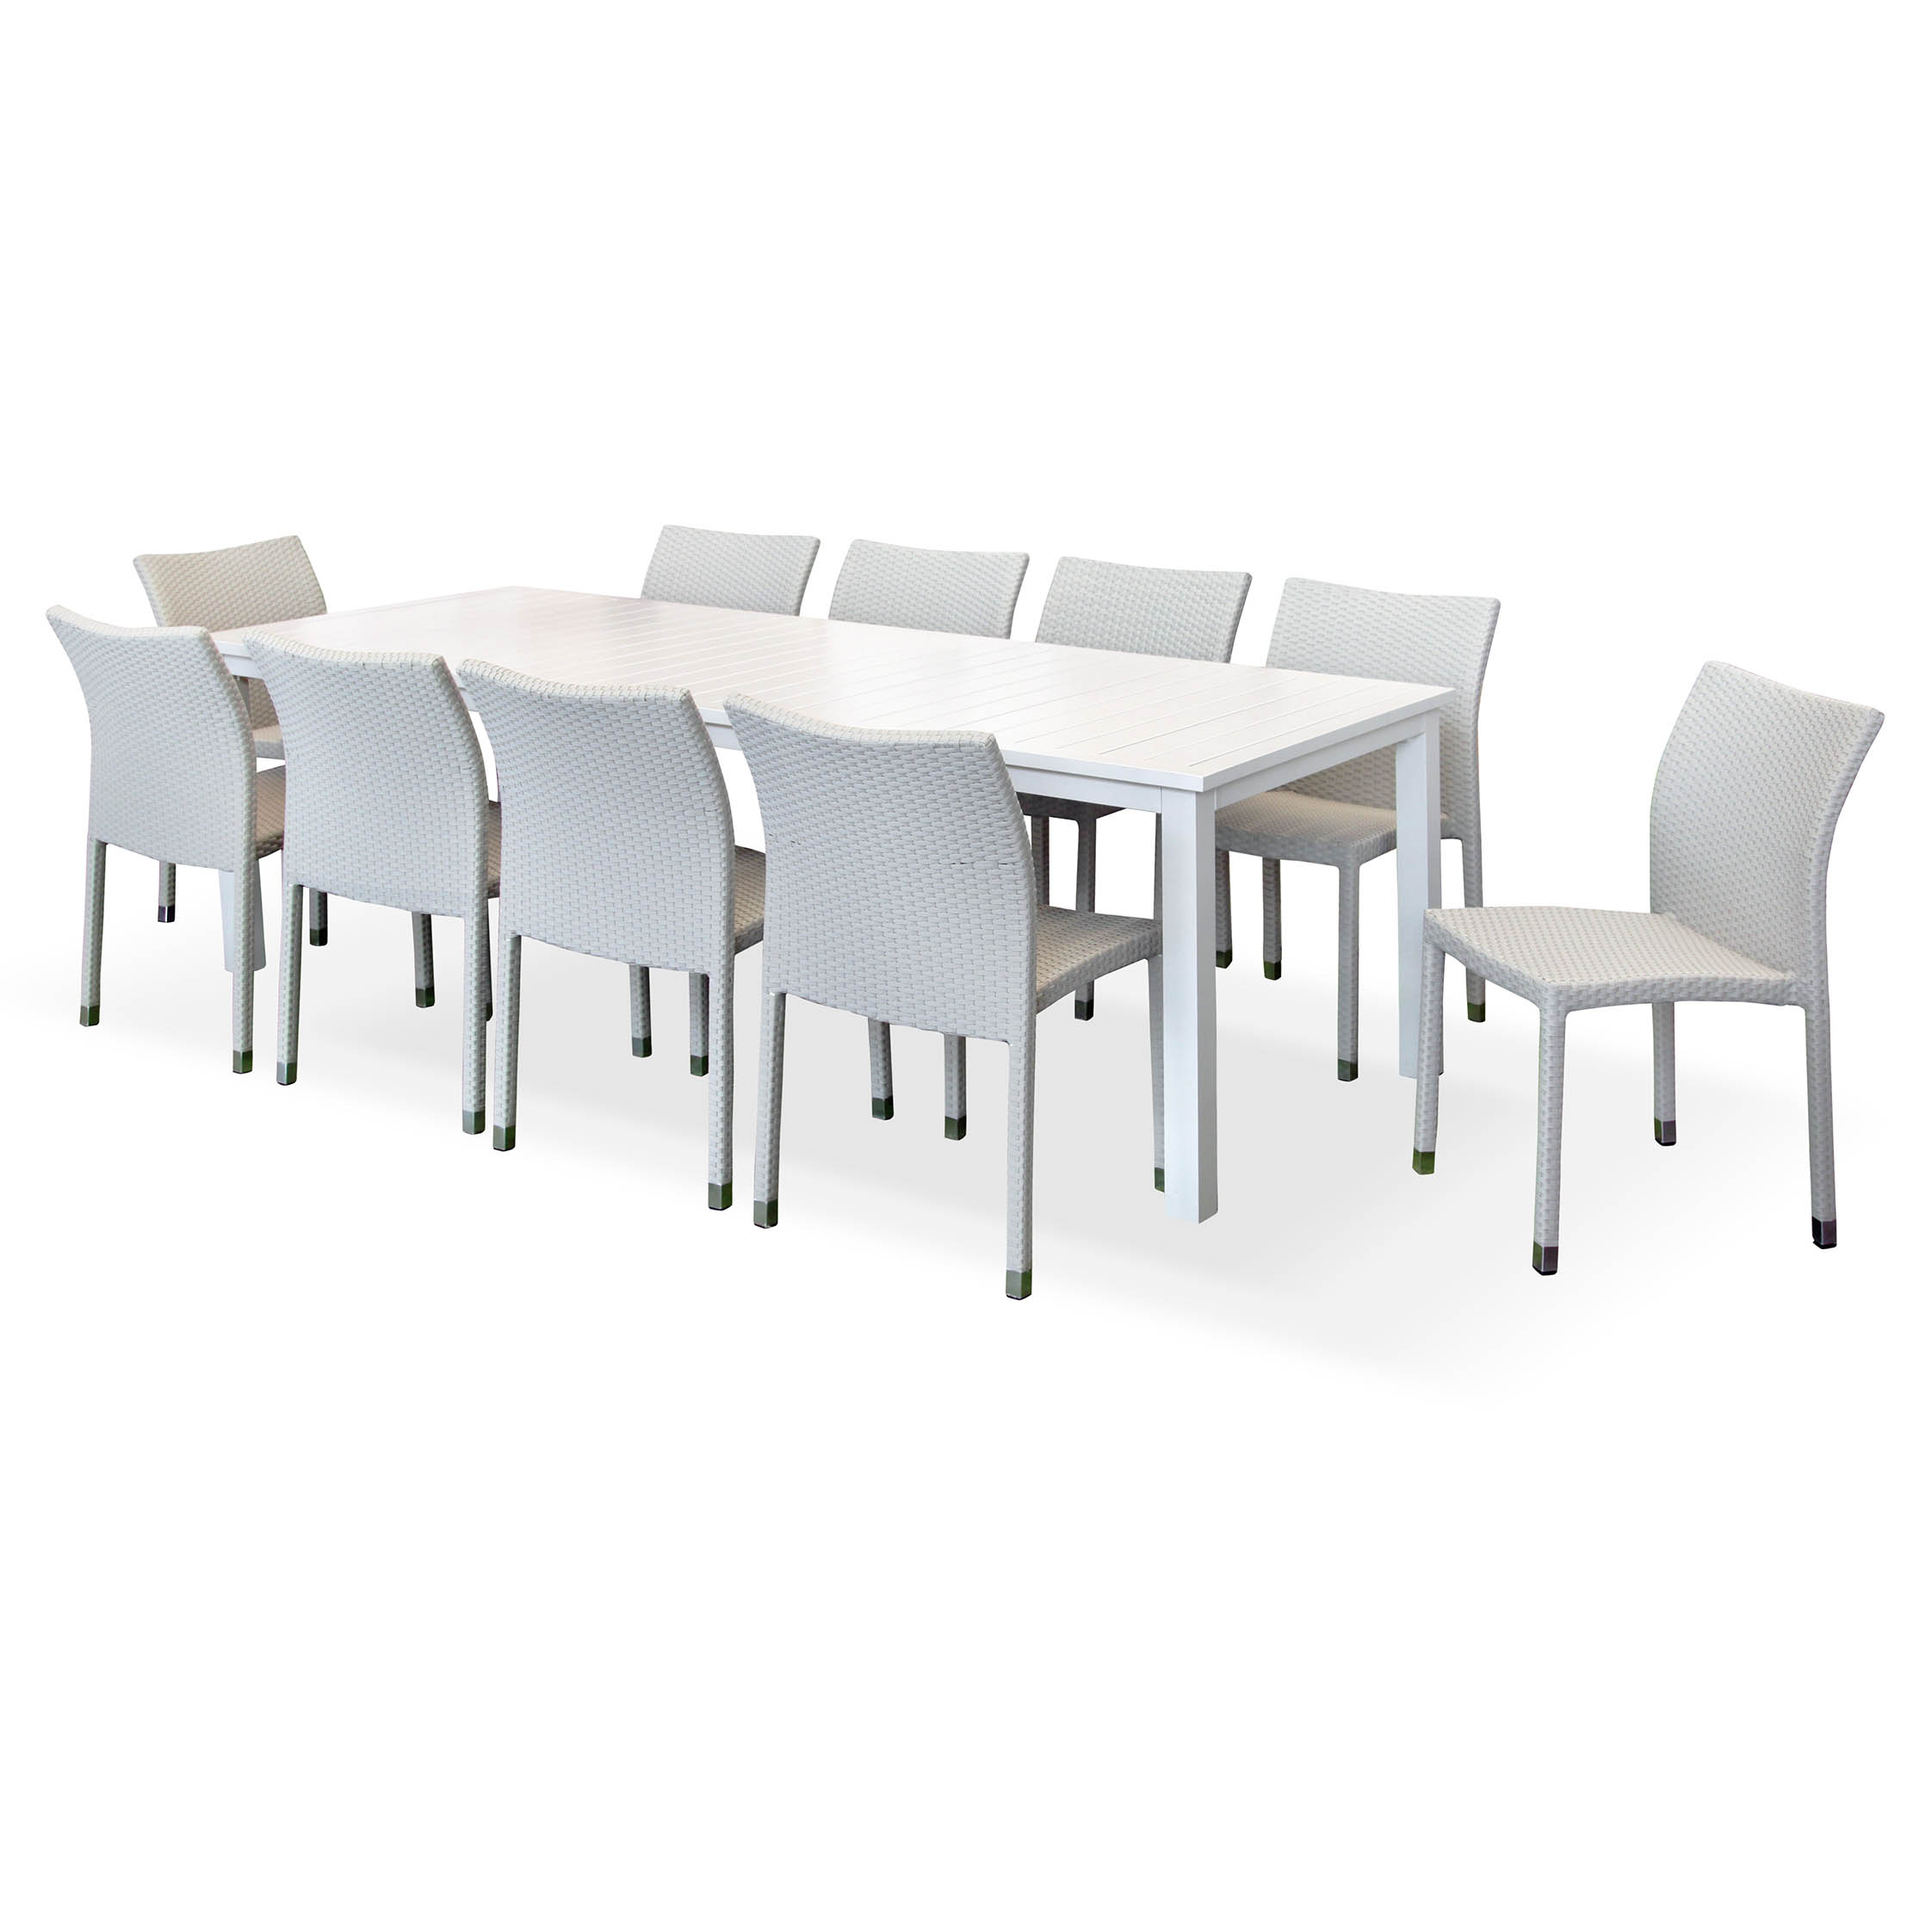 Carson 10 seater Dining set